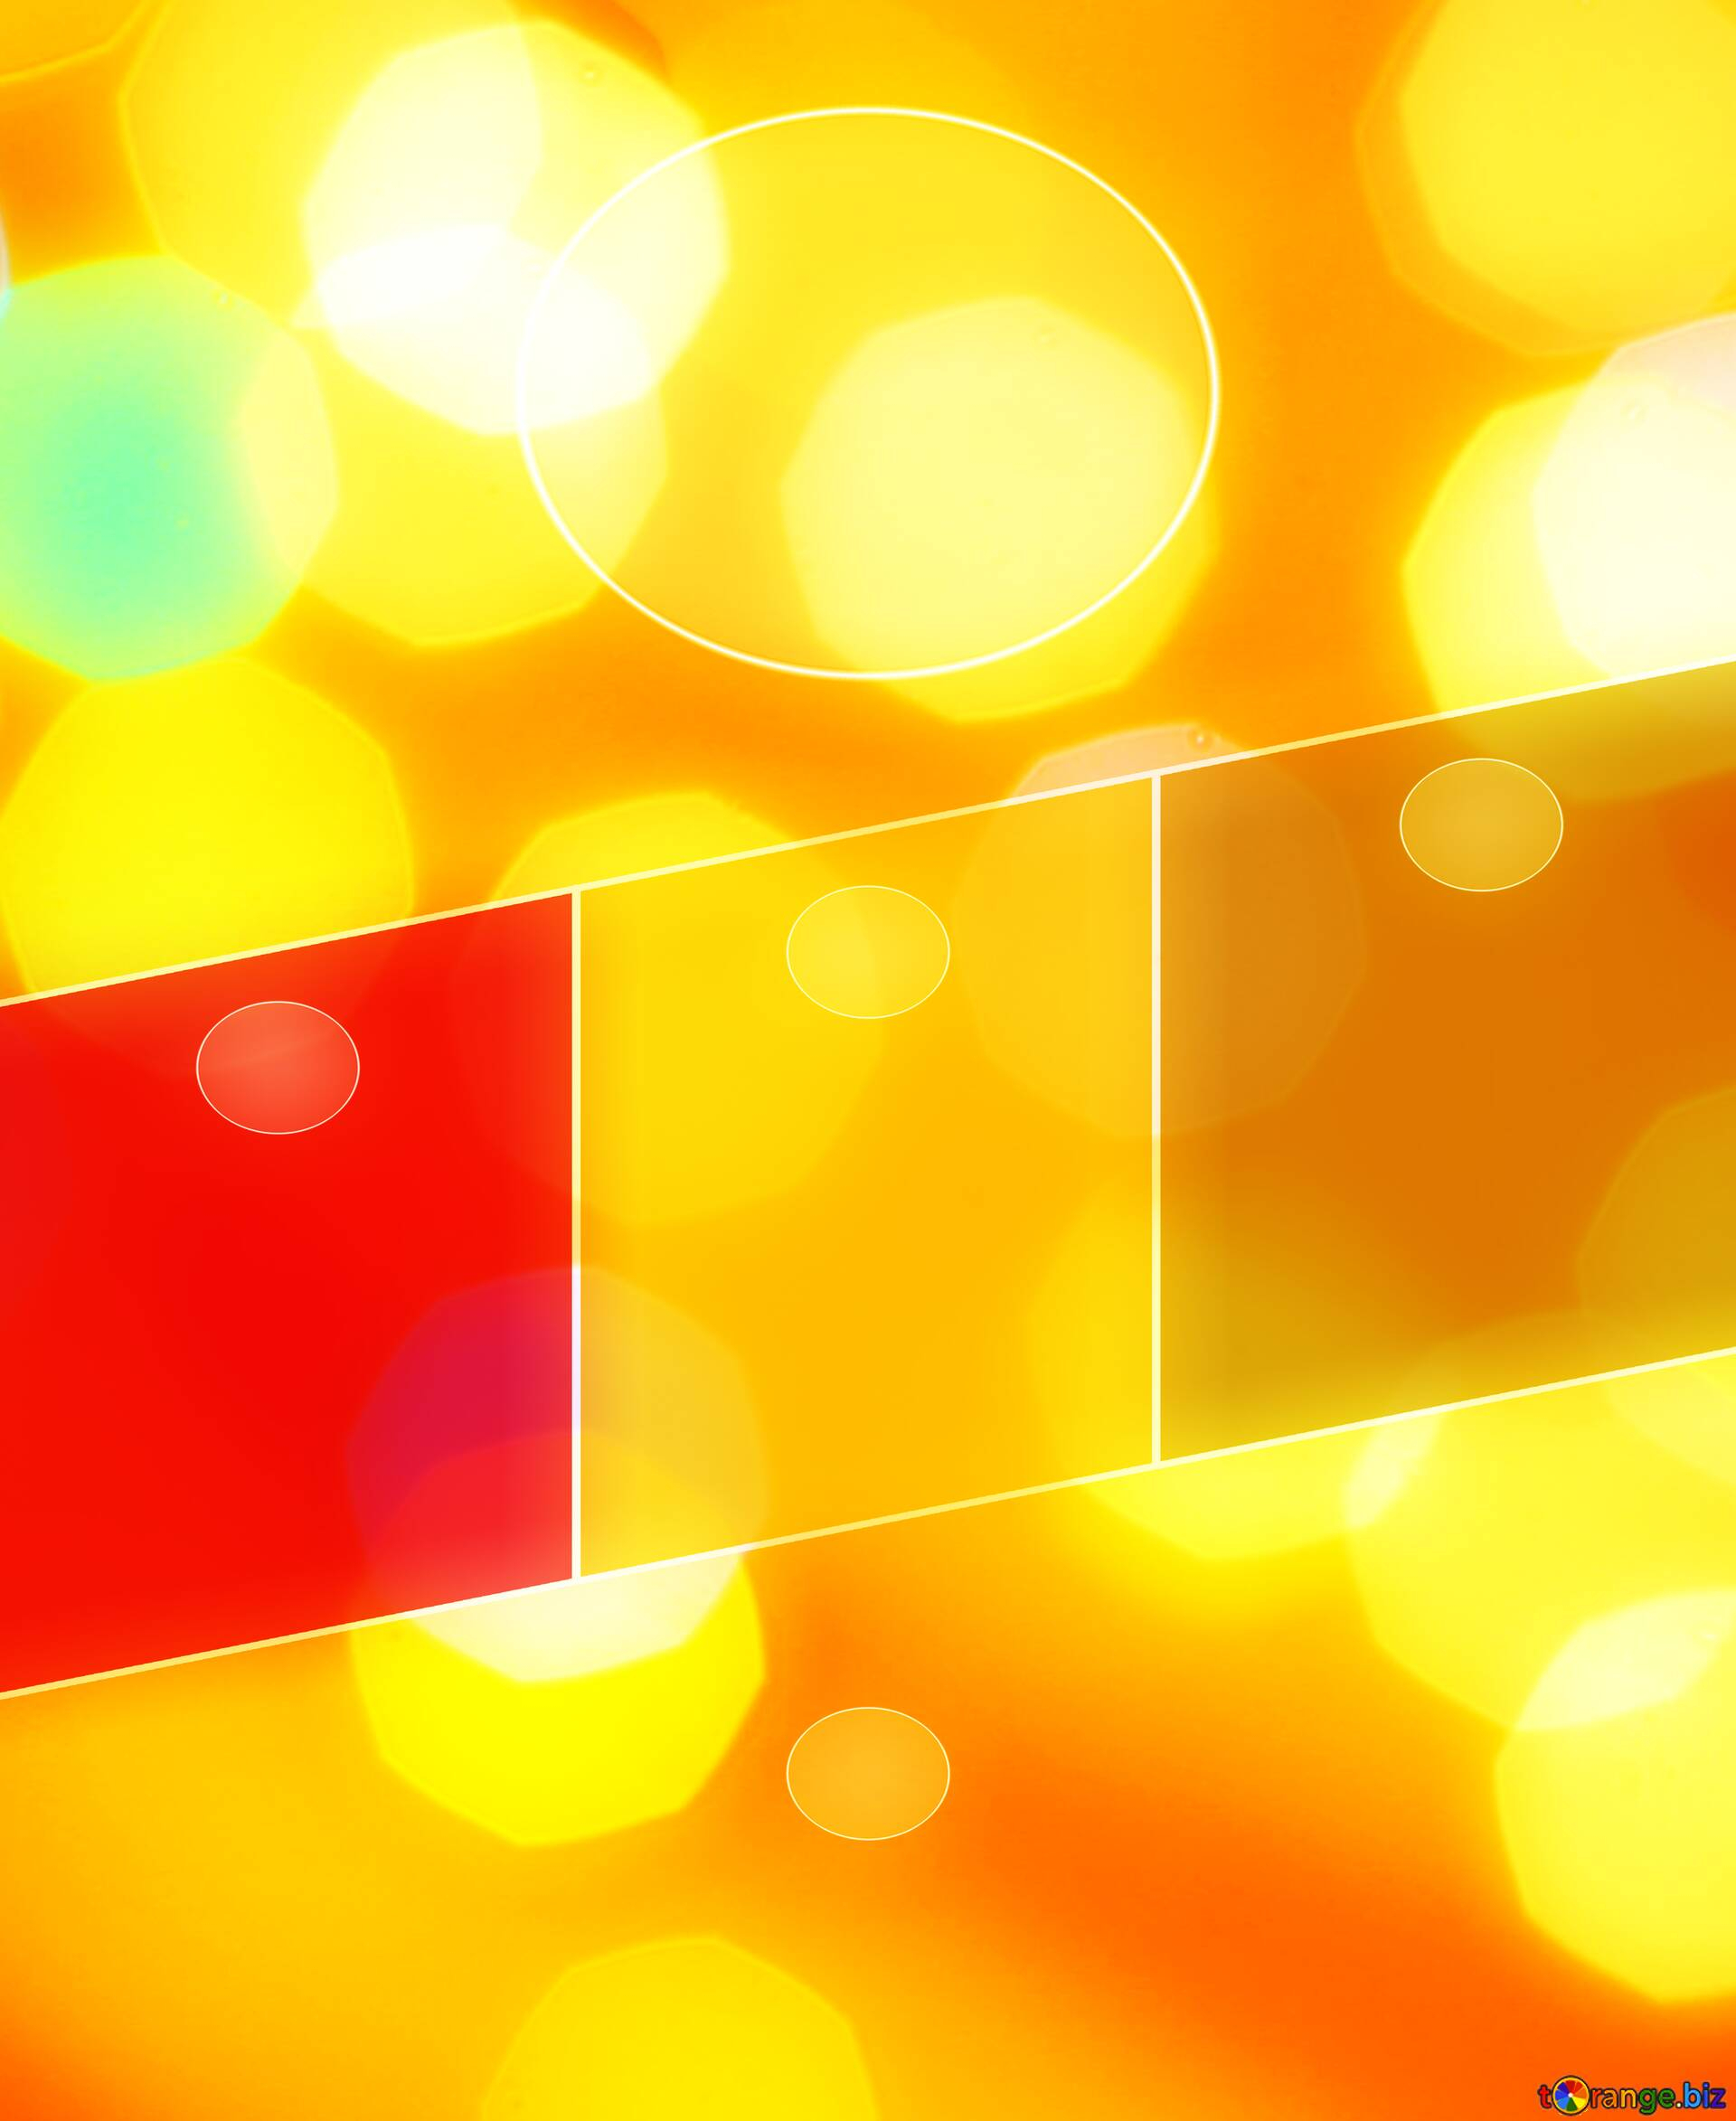 fragment colours image size bright vivid very contrast a4